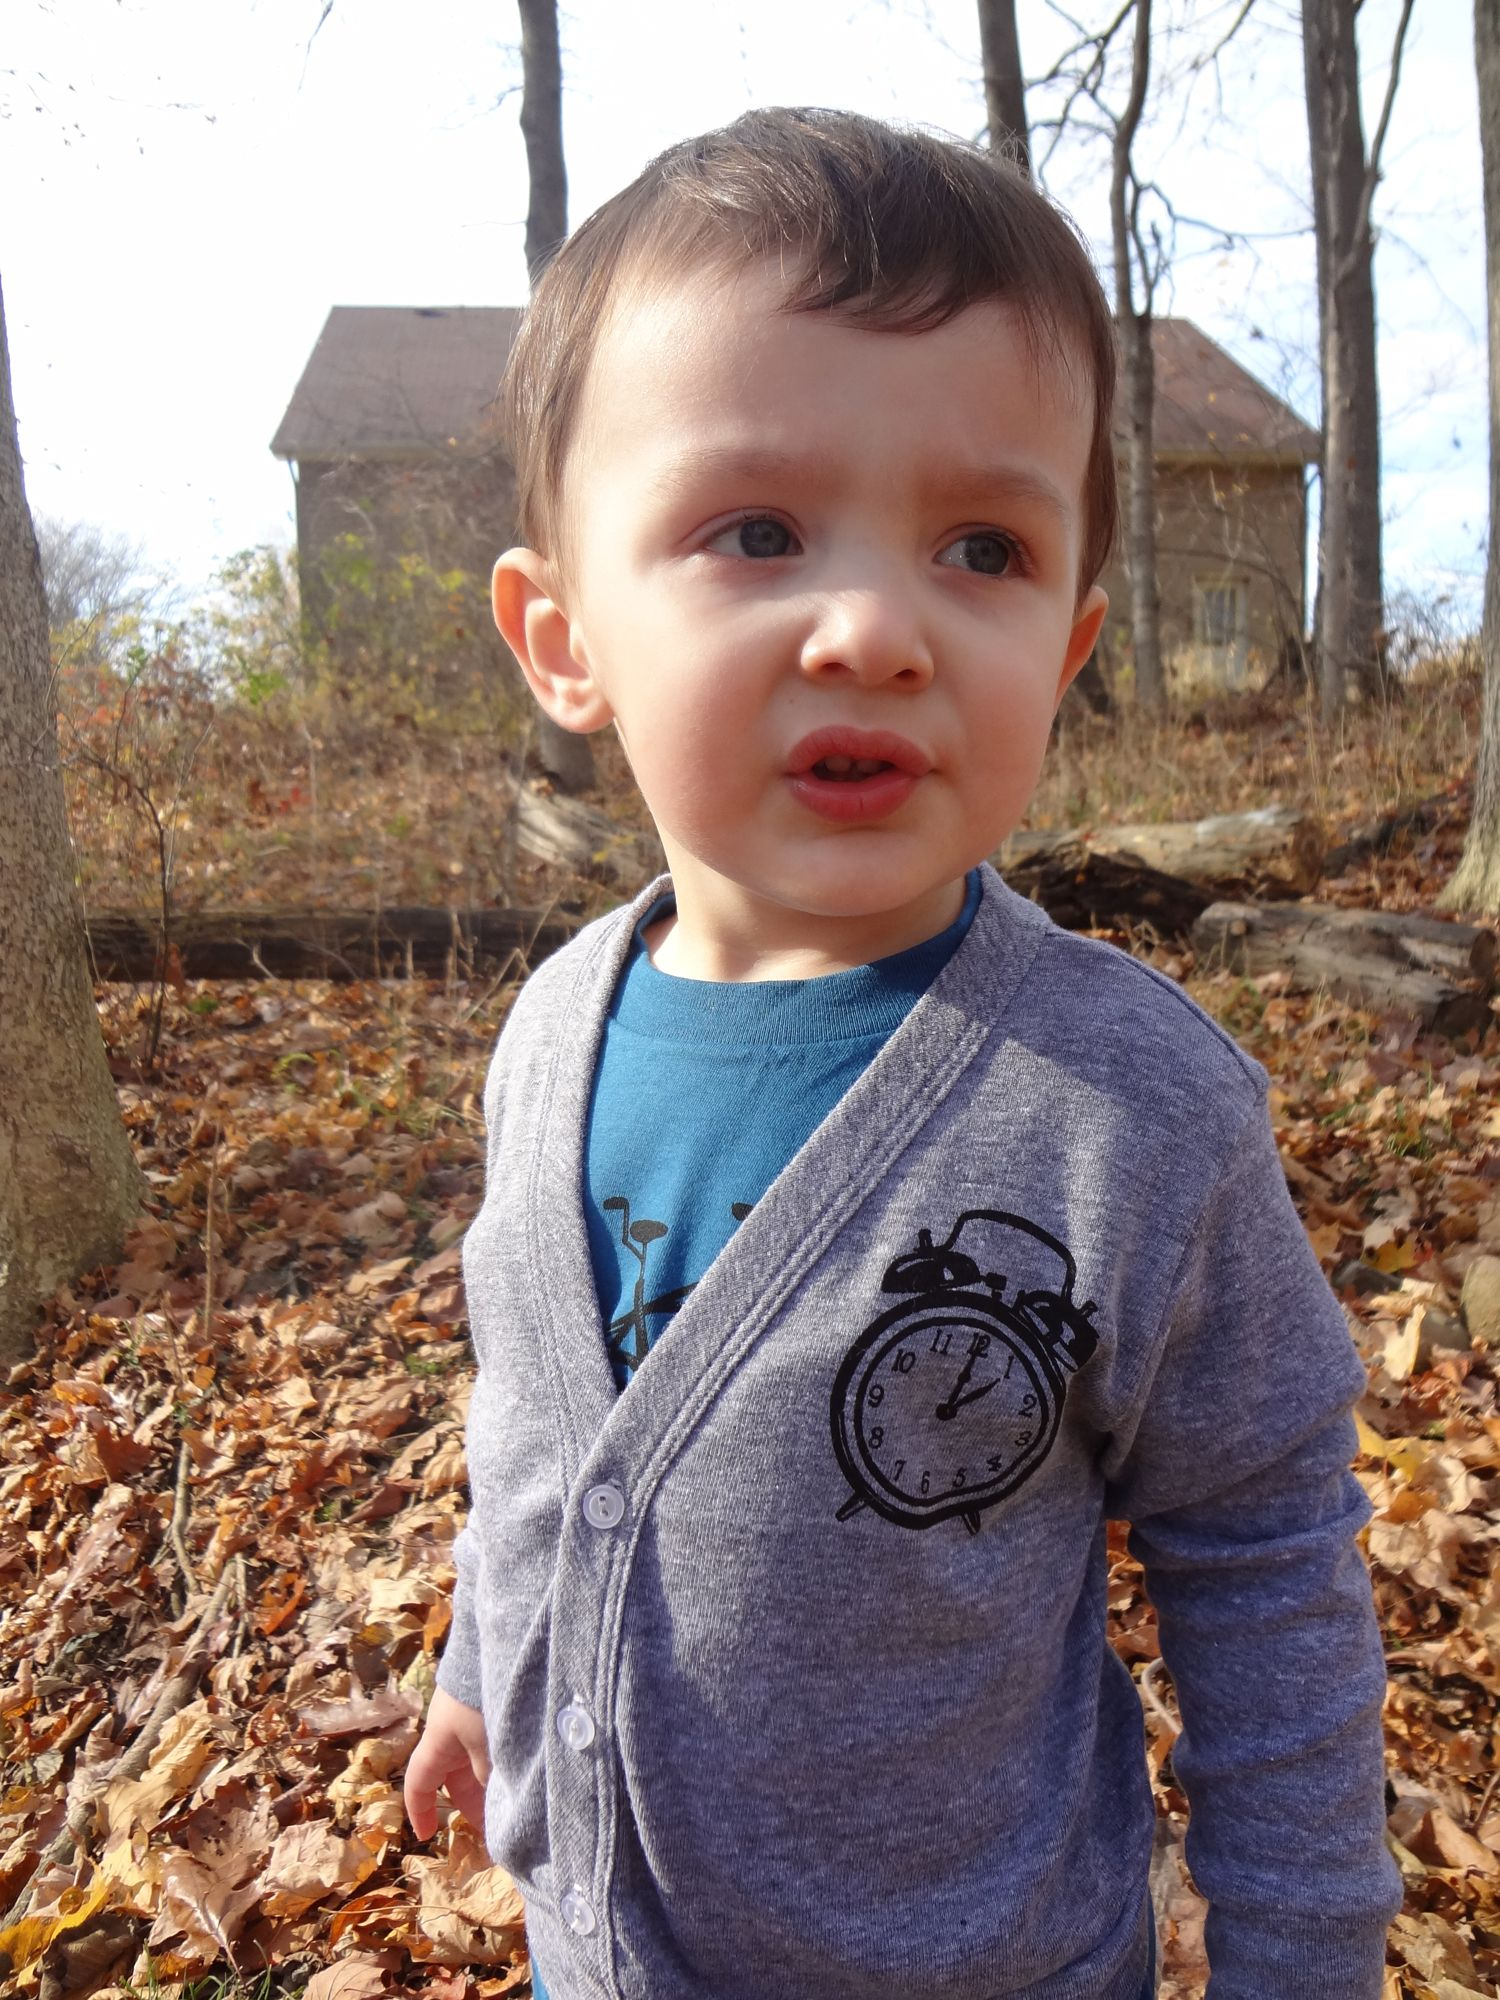 Check out these adorable hand screen-printed cardigans!  Made in the U.S.A.